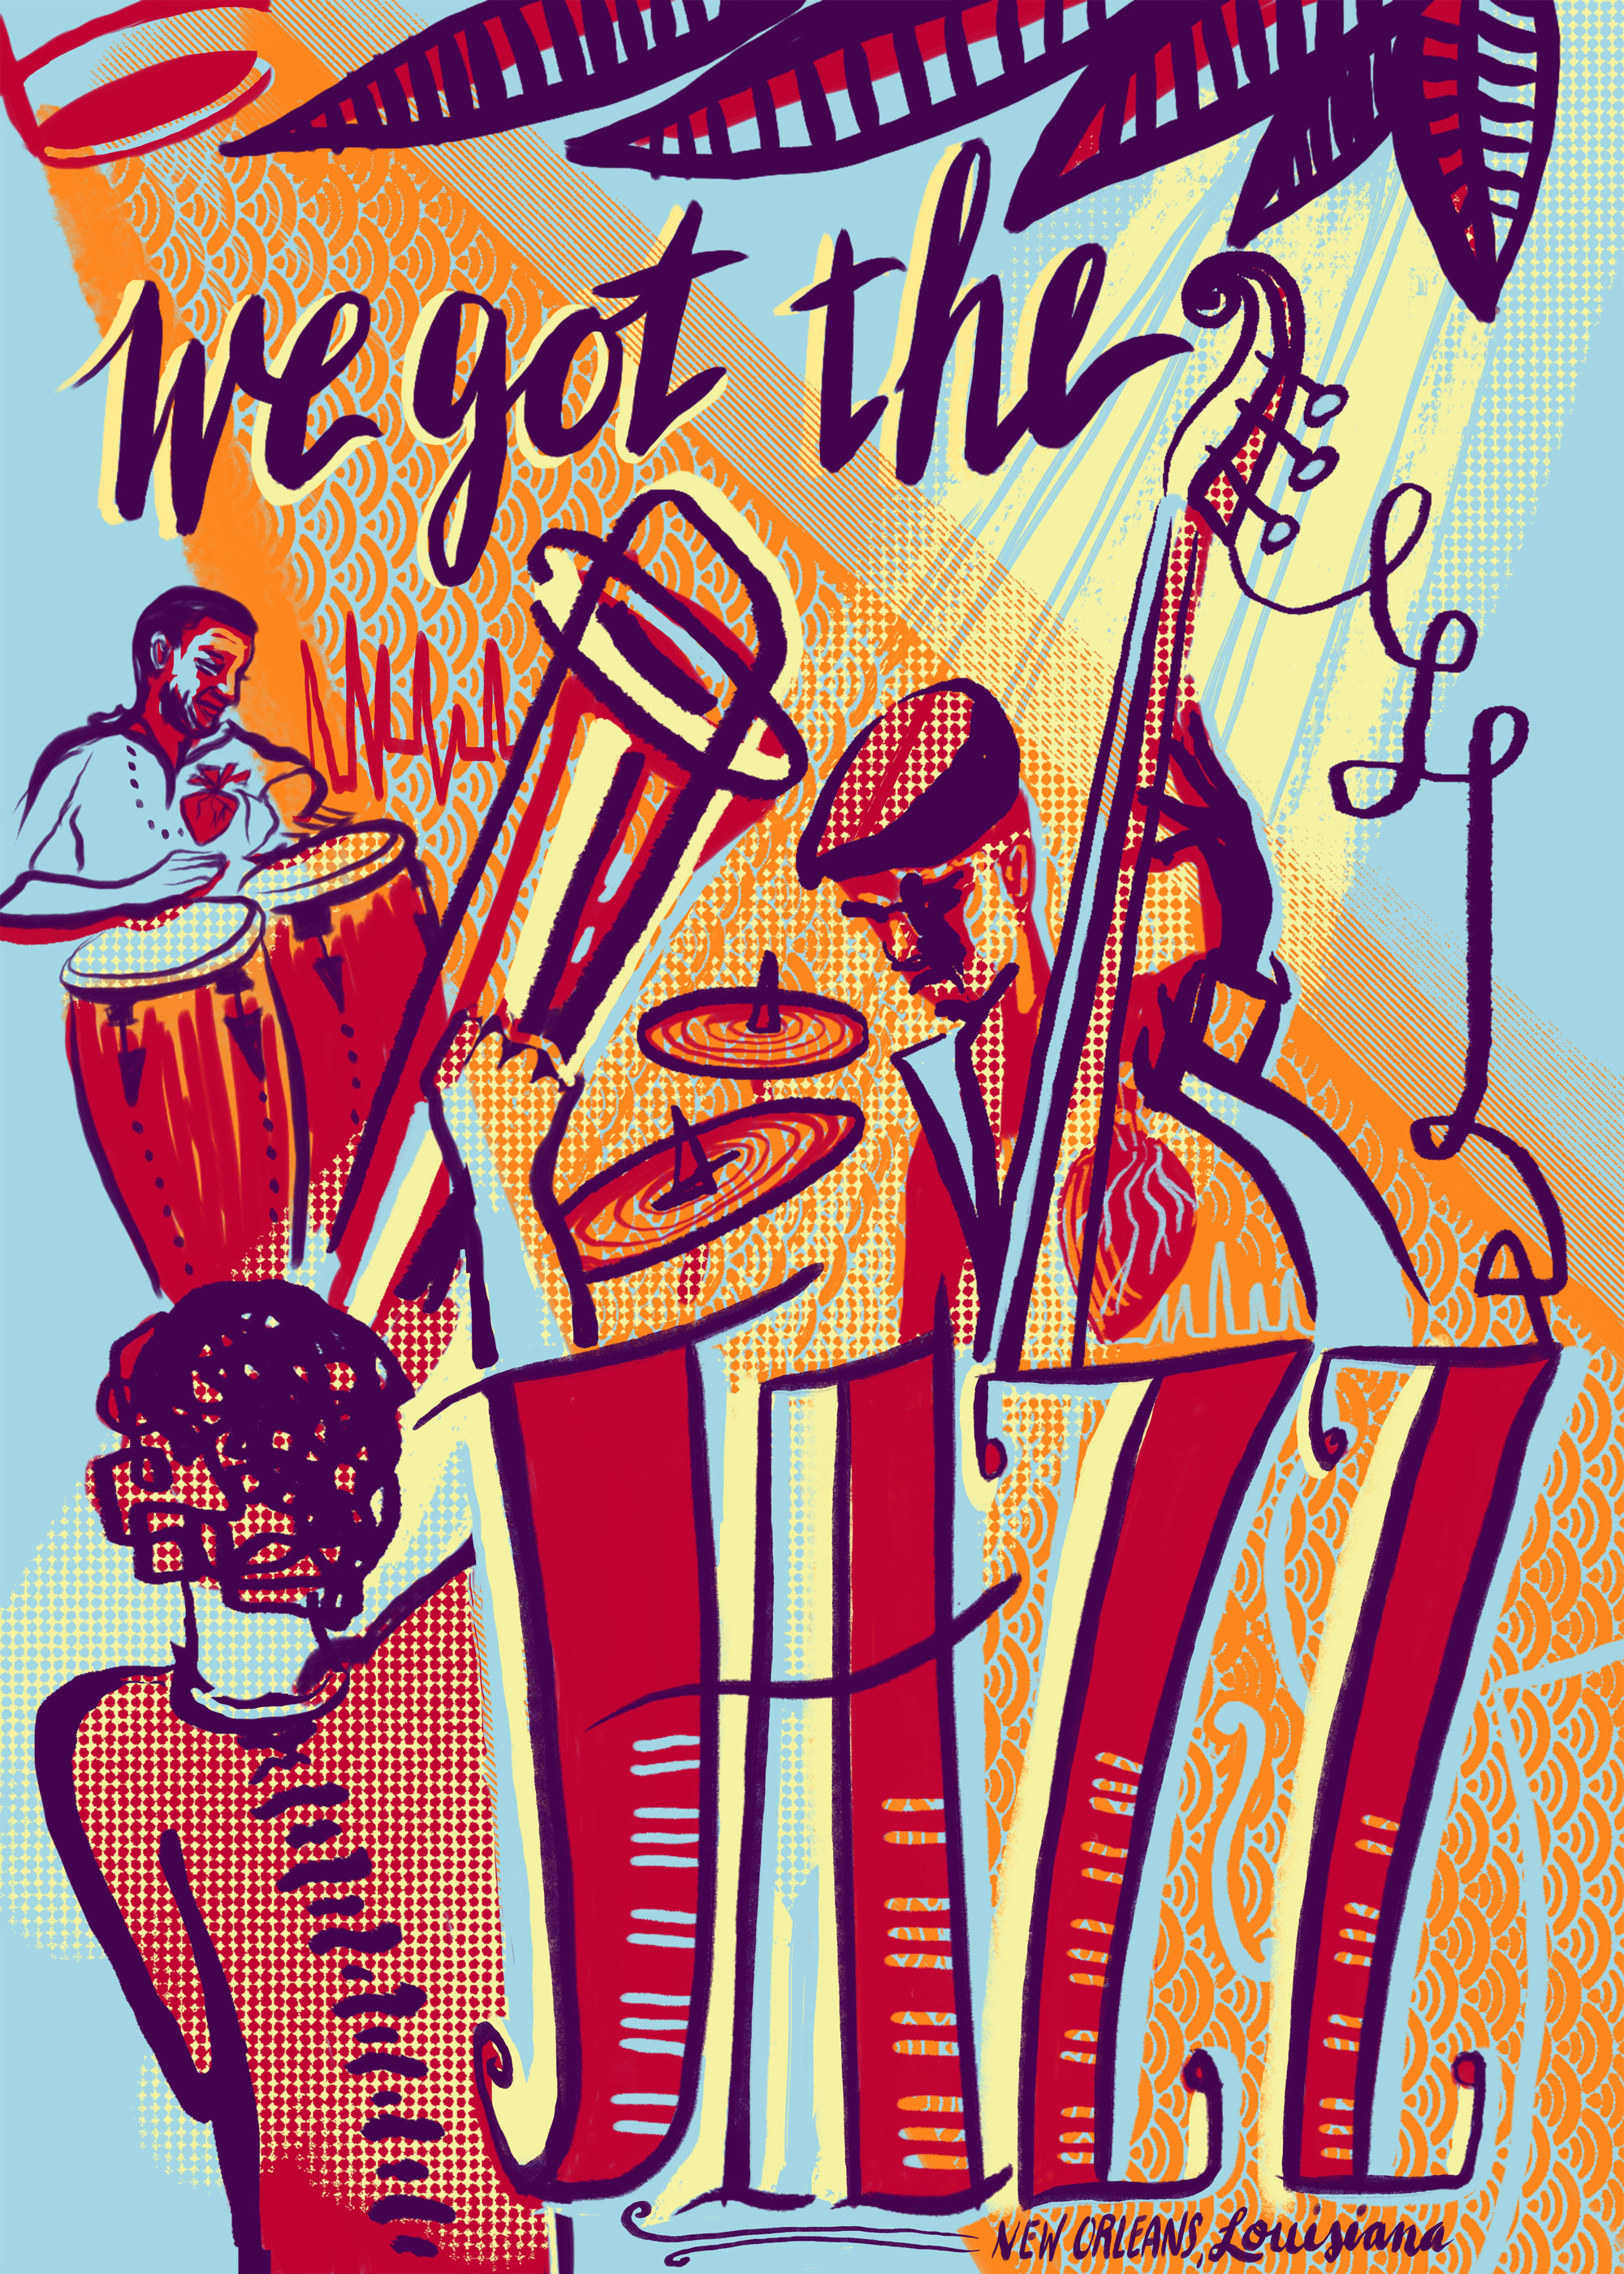 No Jazz Fest >> We Got The Jazz Screen Printed Poster Benefits N O Musicians Clinic 18x24